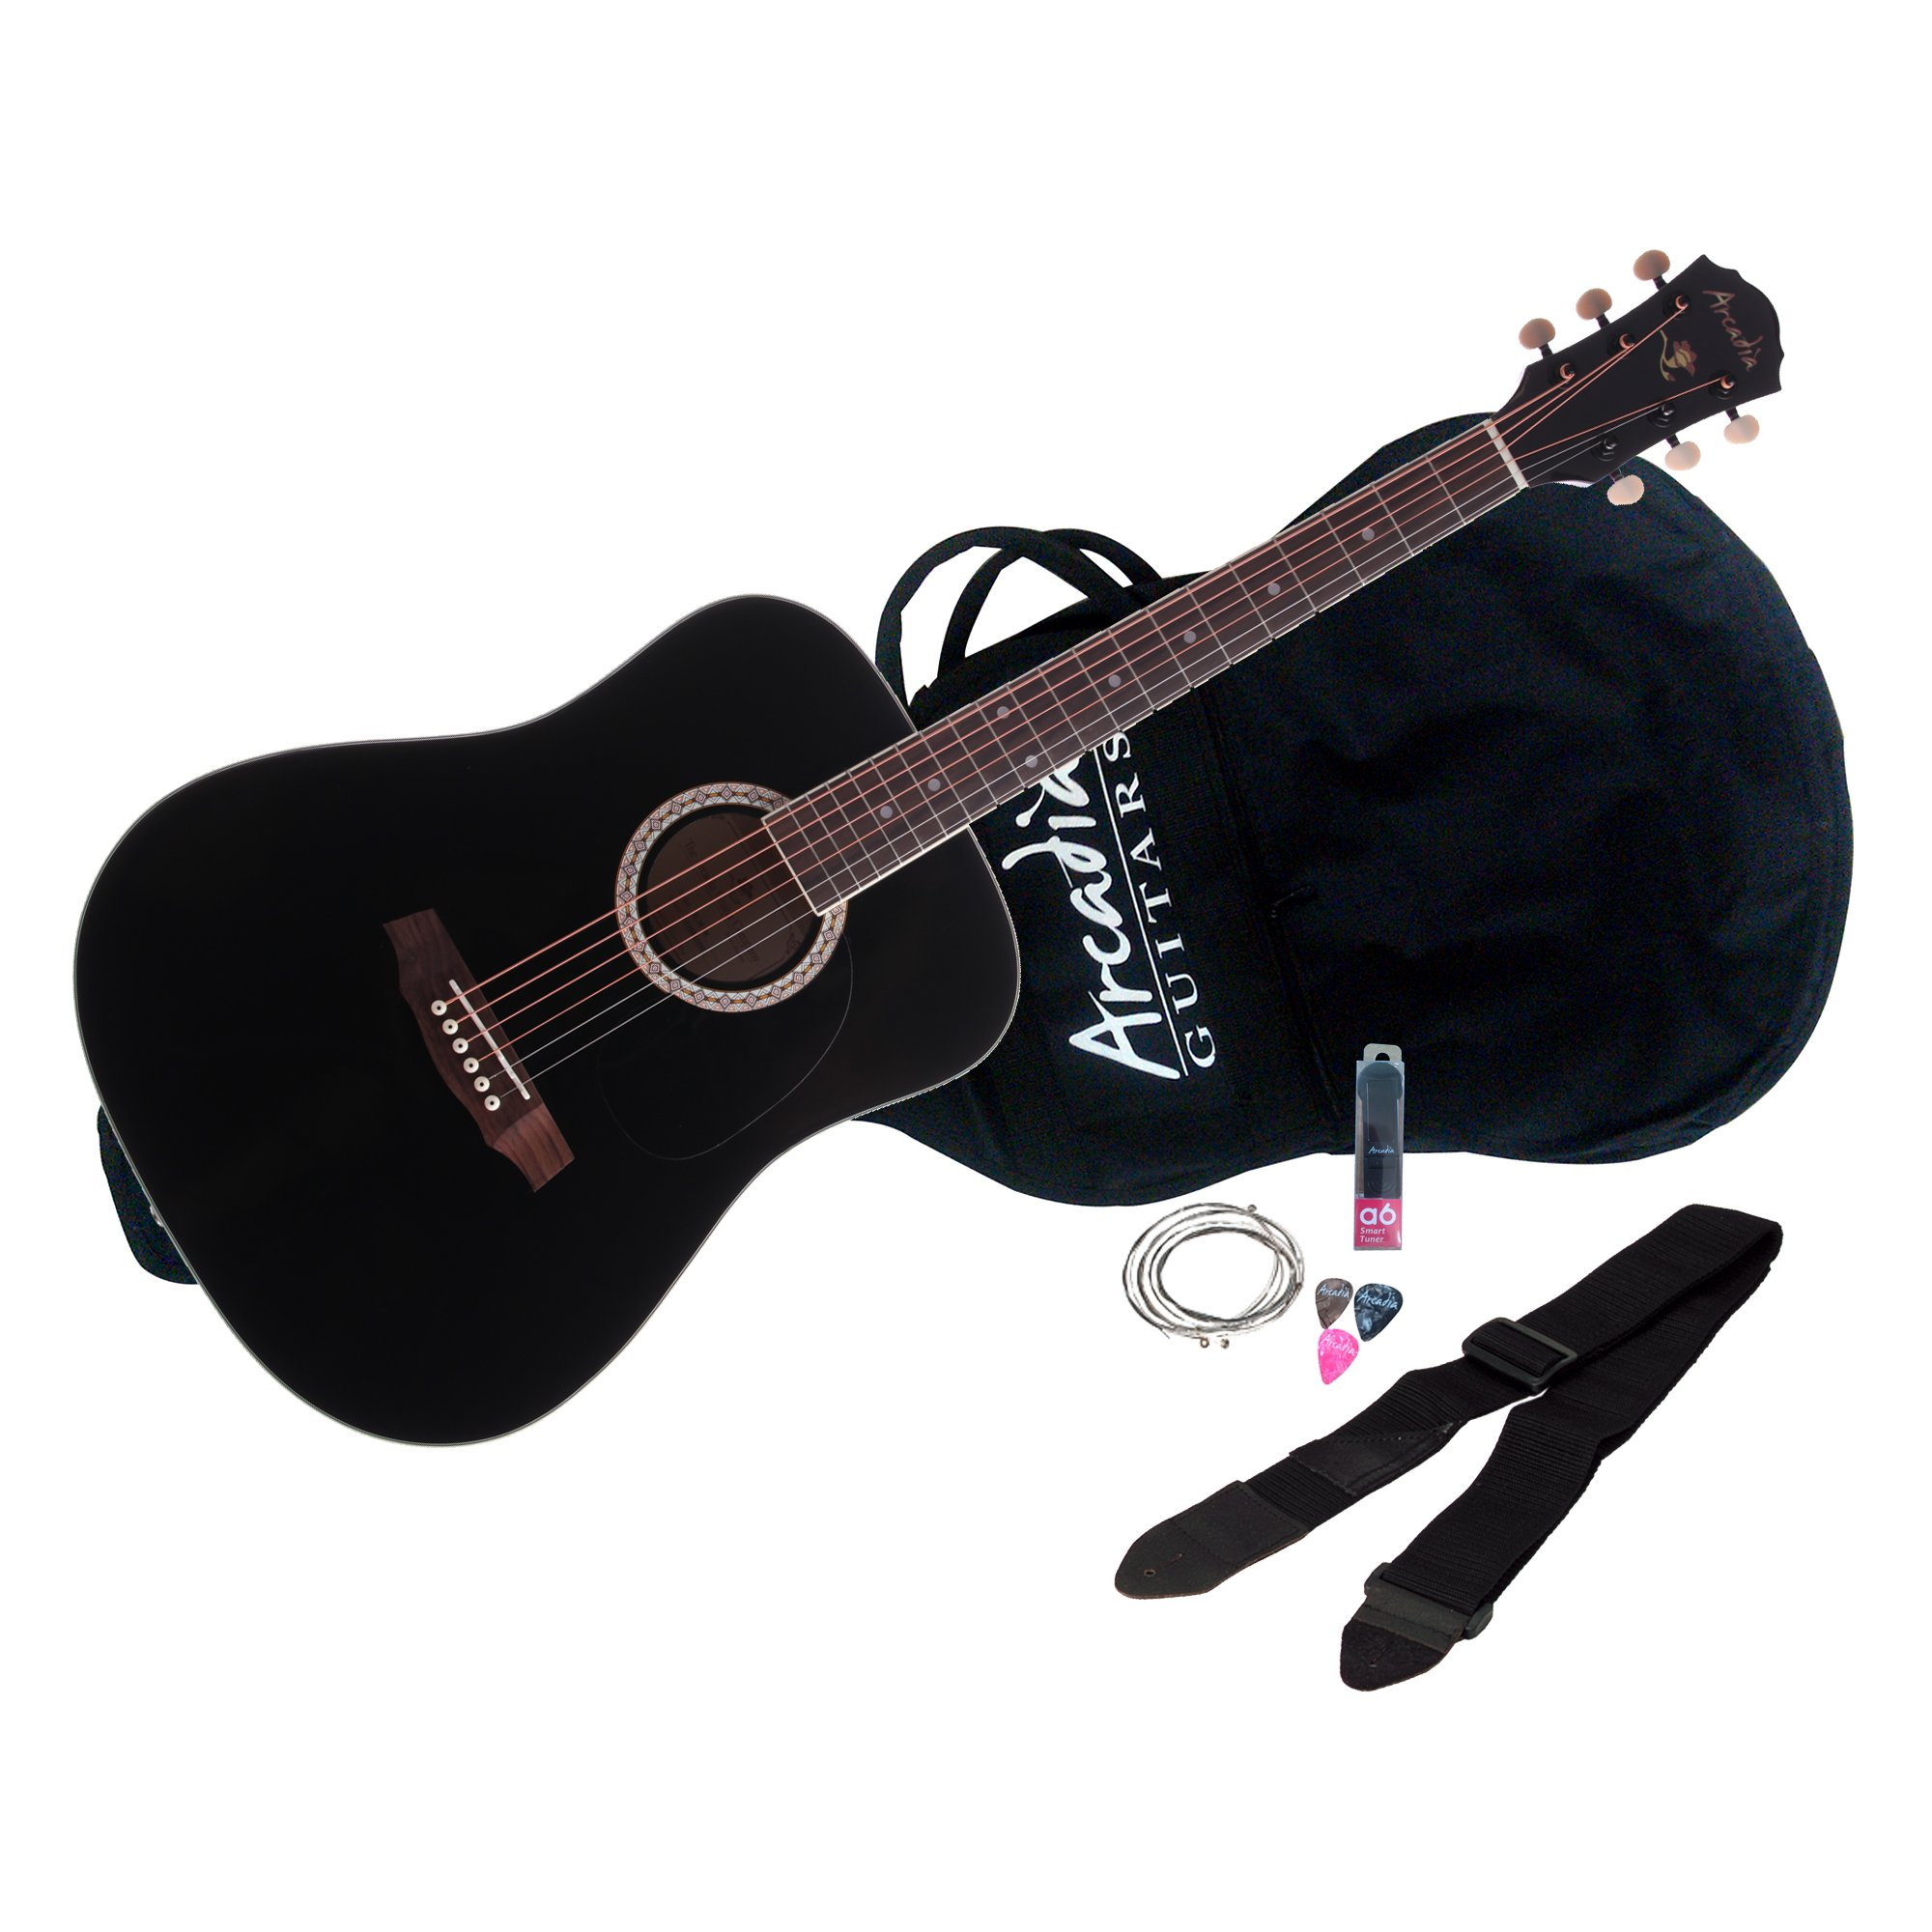 Arcadia DL36BK PAK 36-Inch Parlor Size Acoustic Guitar Pack, Spruce with Black Finish